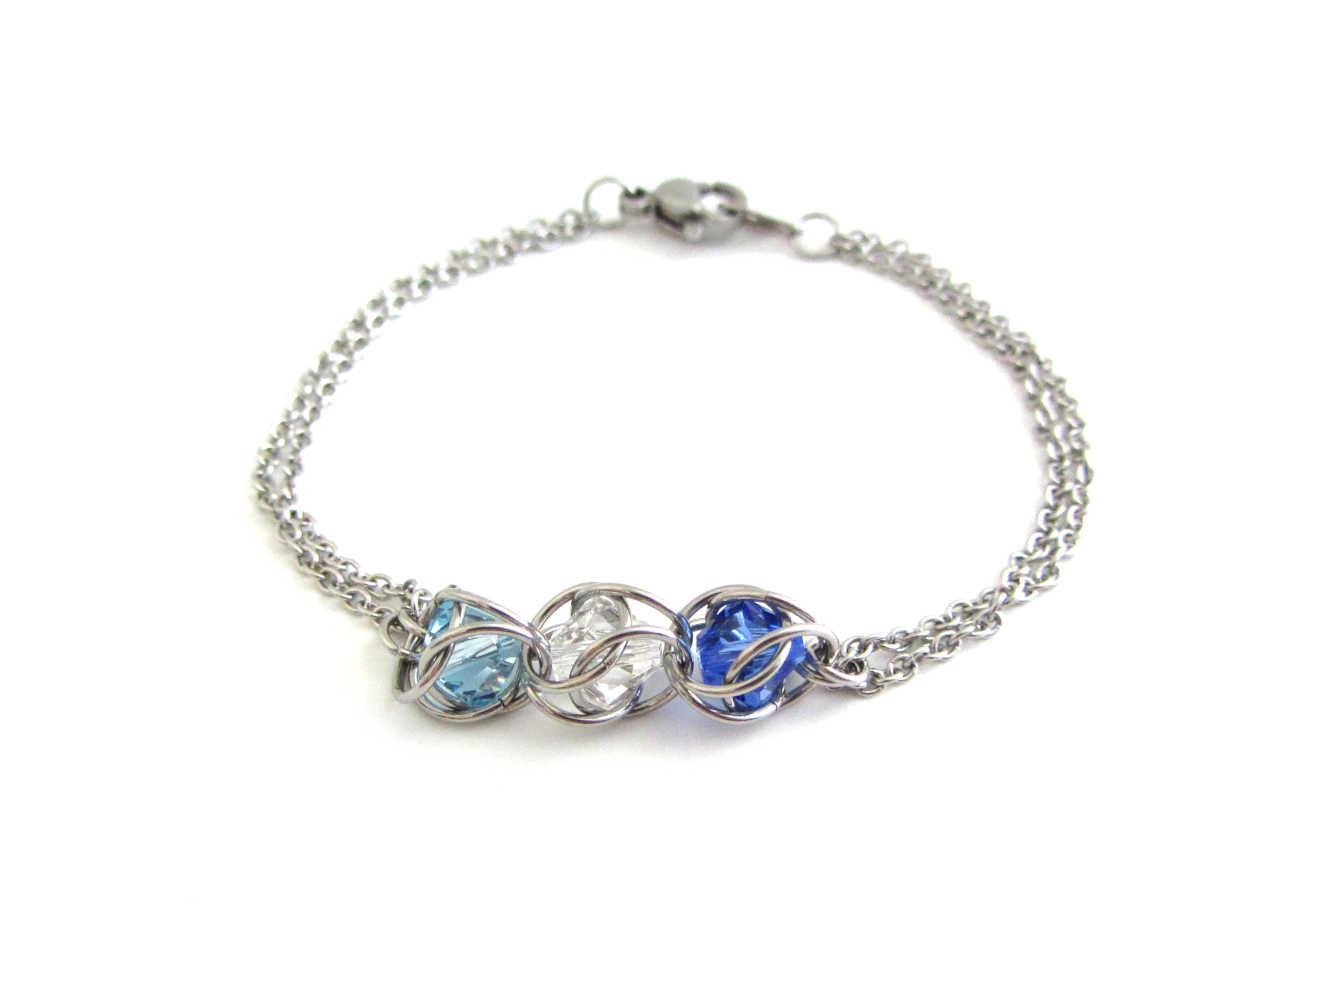 captured light blue, clear and dark blue crystal beads chainmaille bracelet